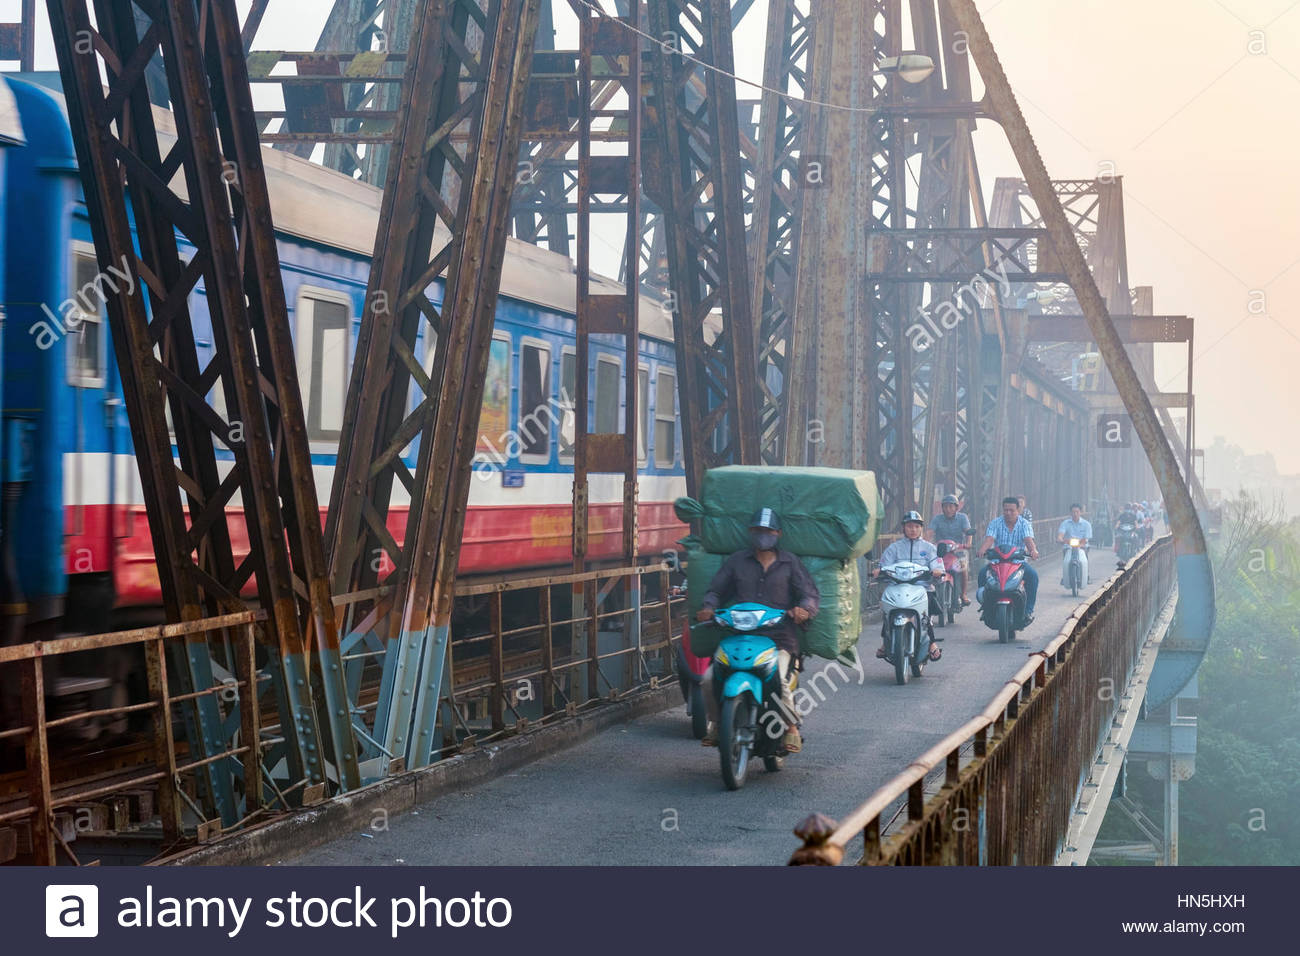 Heavy commuter motorbike traffic and a train on the Long Bien cantilever bridge, Hanoi, Vietnam - Stock Image